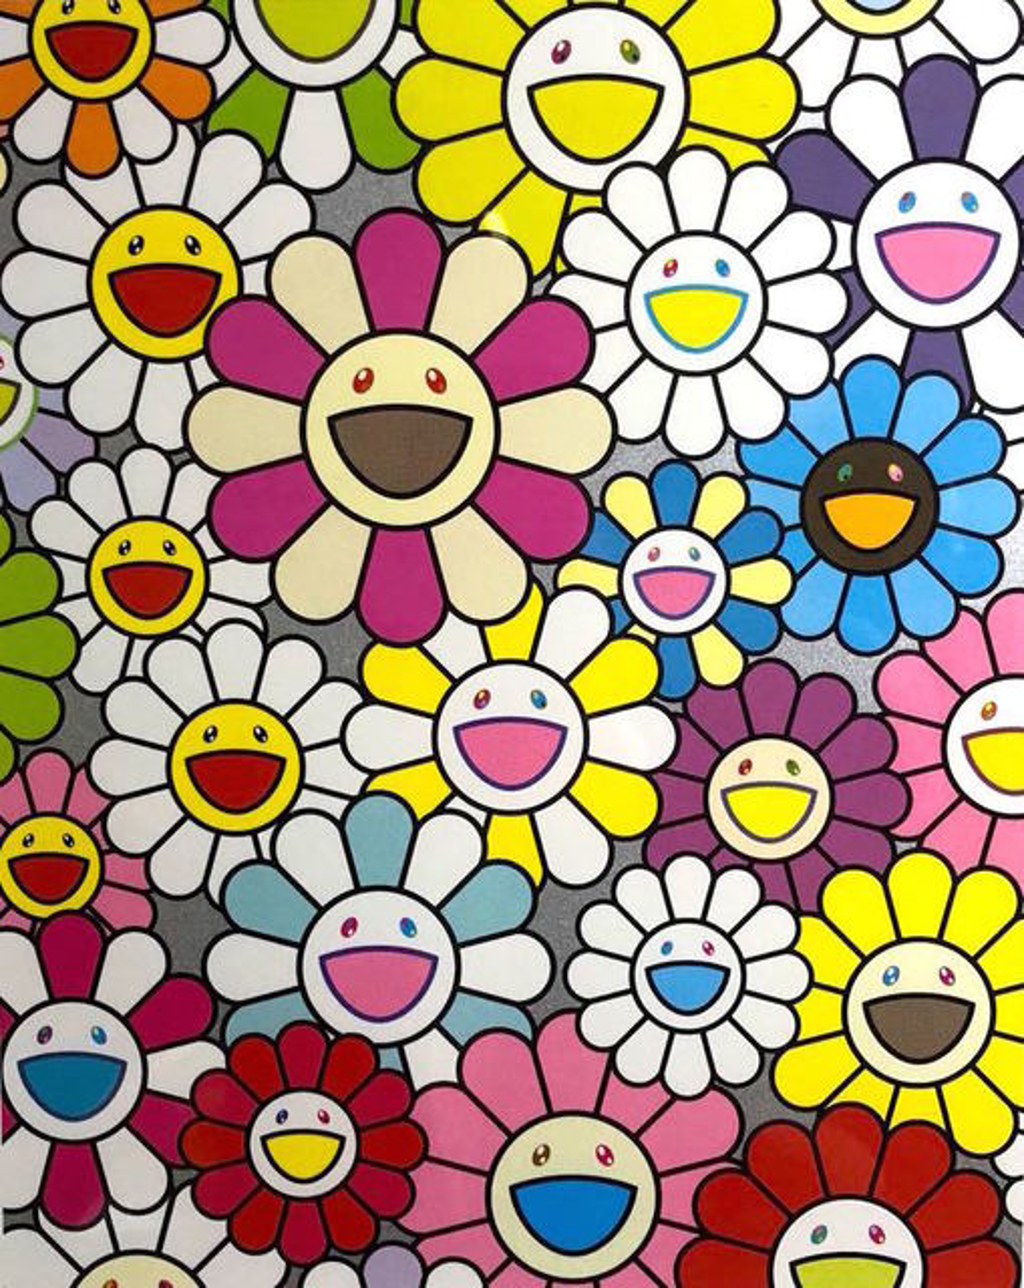 Small Flower Painting in Pink, Purple and Many Other Colors by Takashi Murakami (b. 1962)